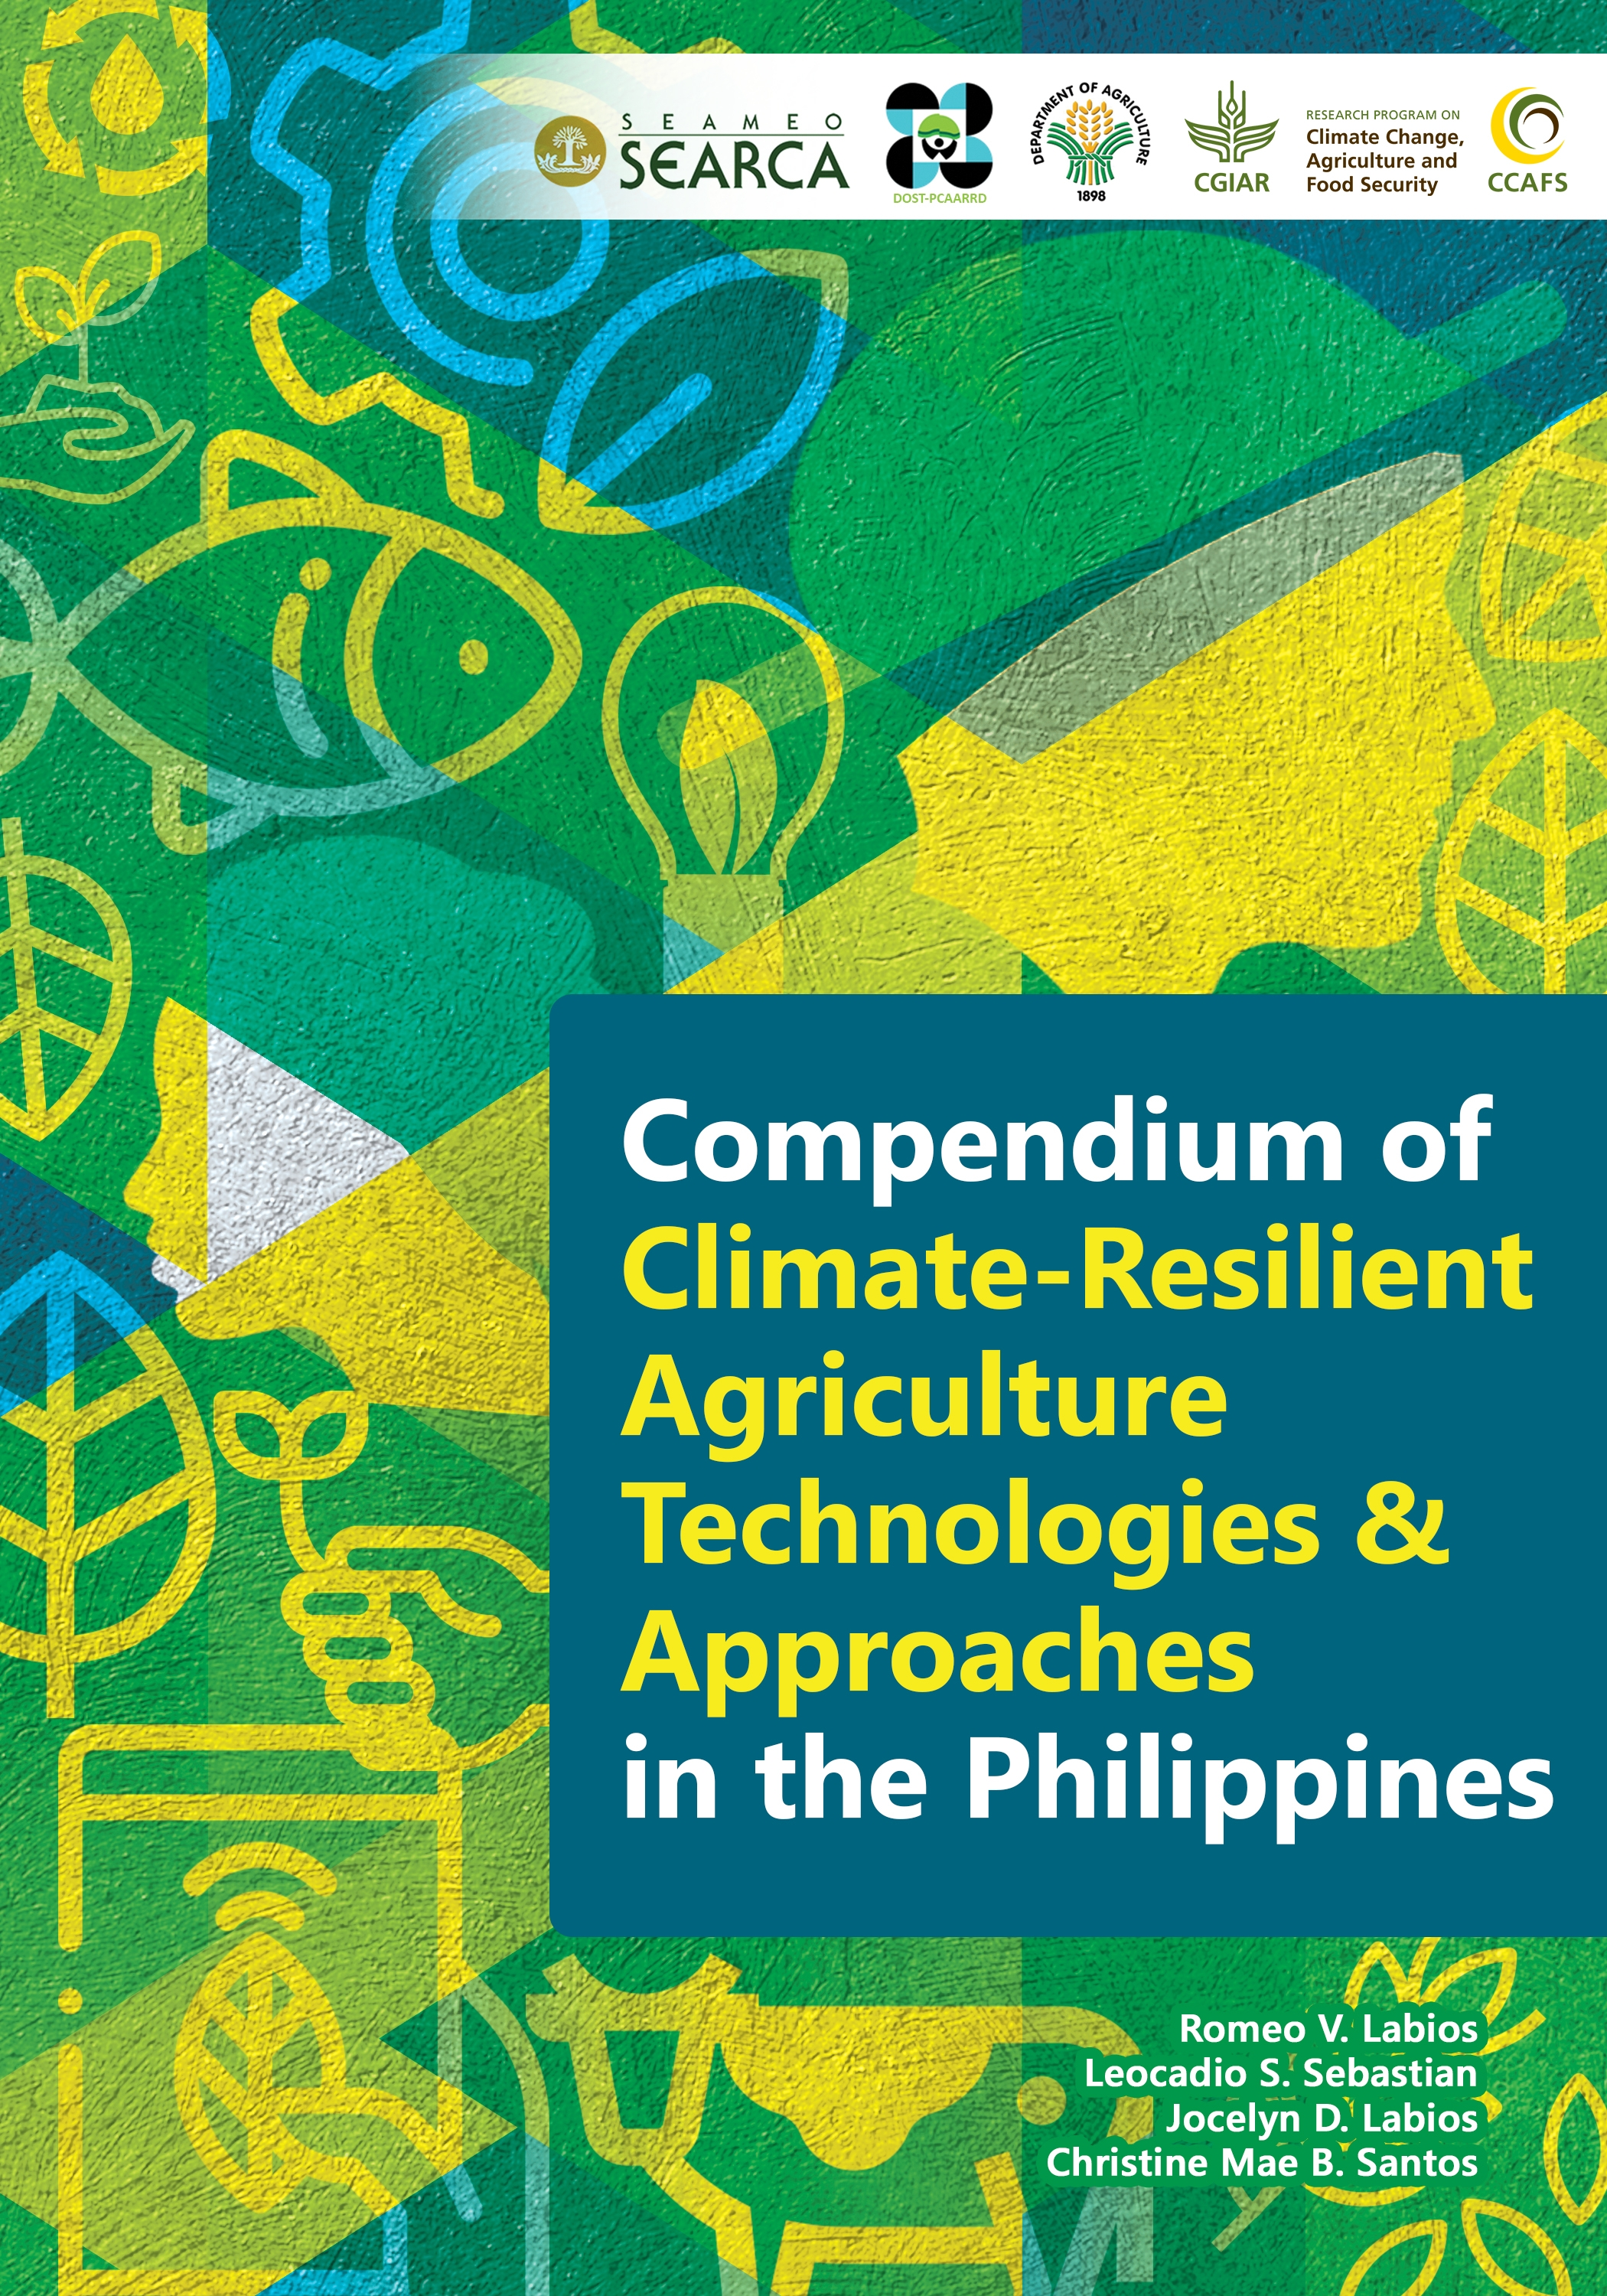 Compendium of Climate-Resilient Agriculture Technologies and Approaches in the Philippines